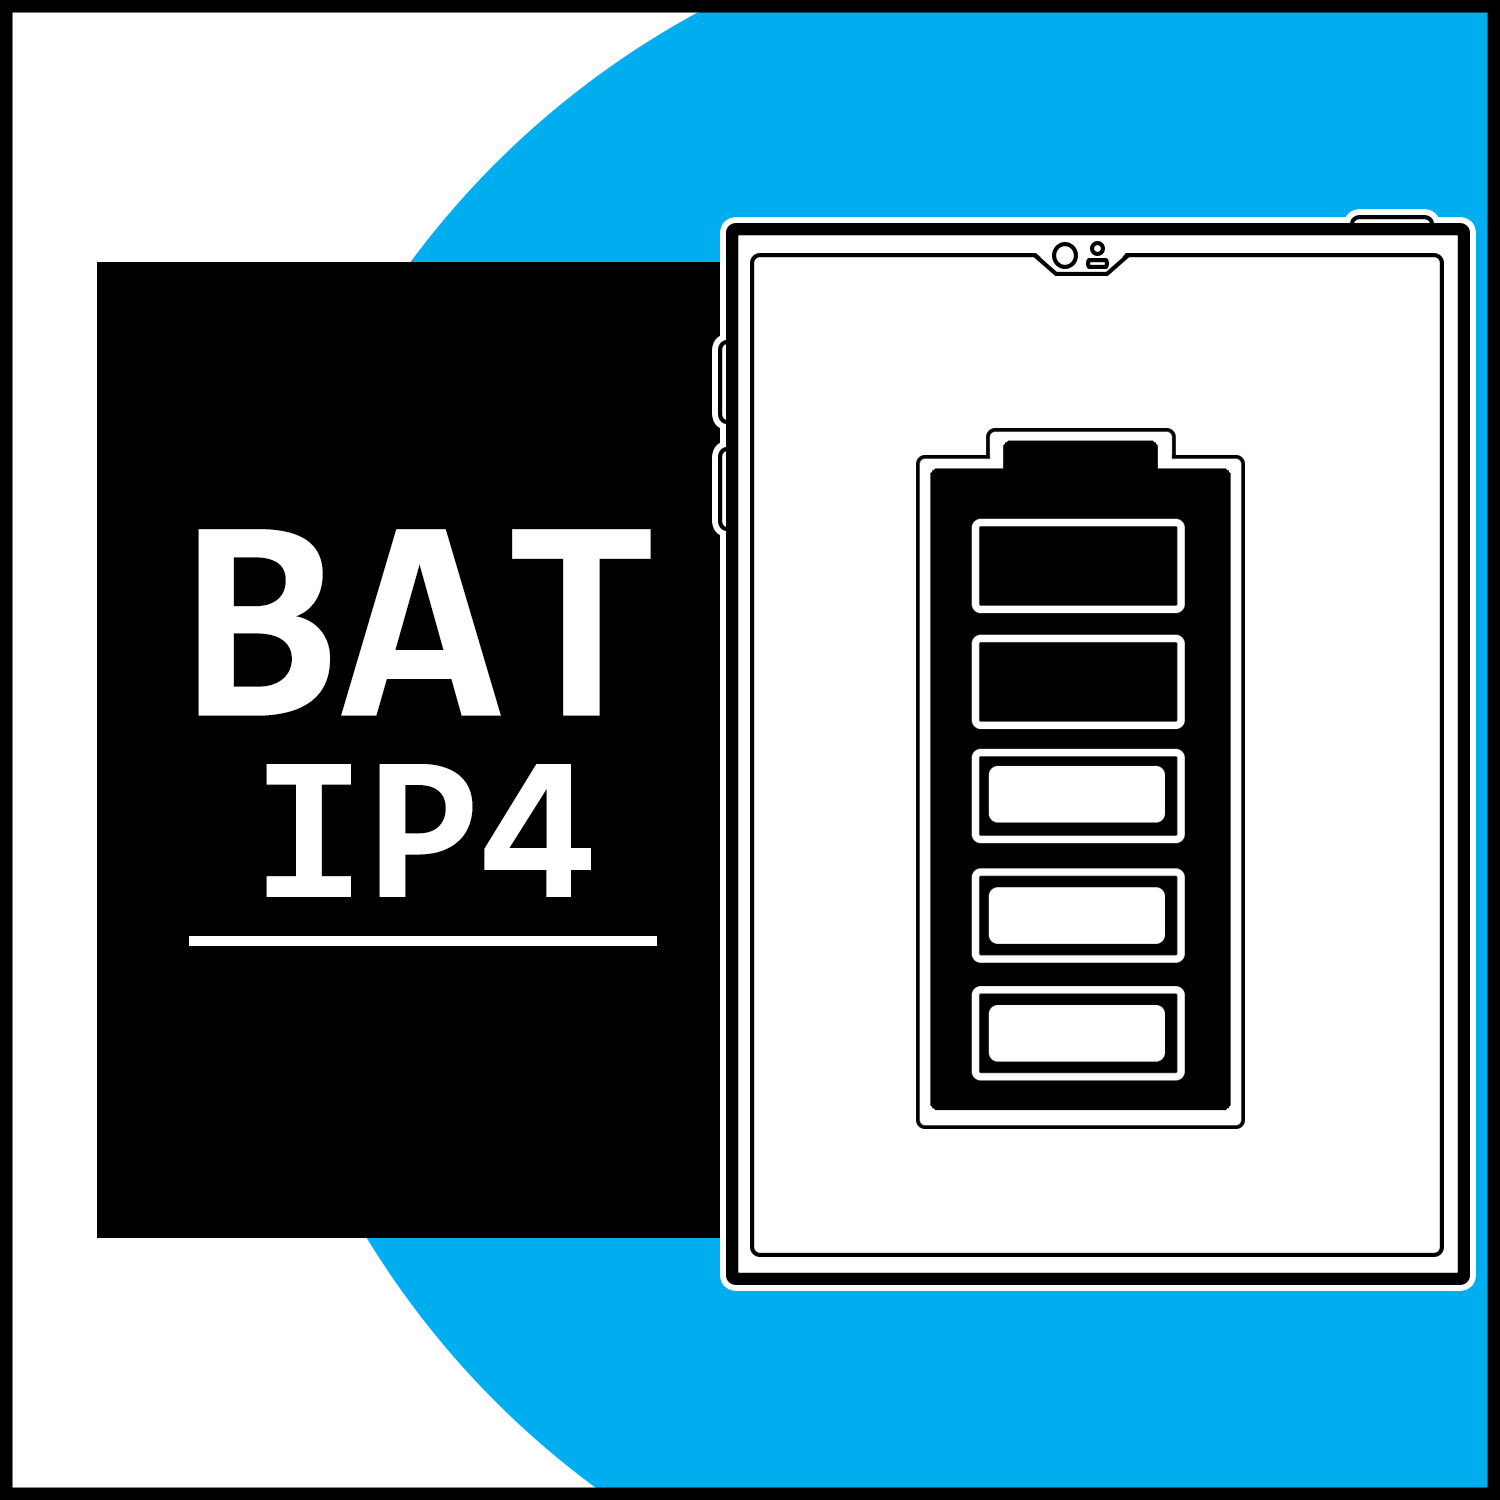 ip4 BAT logo.jpg